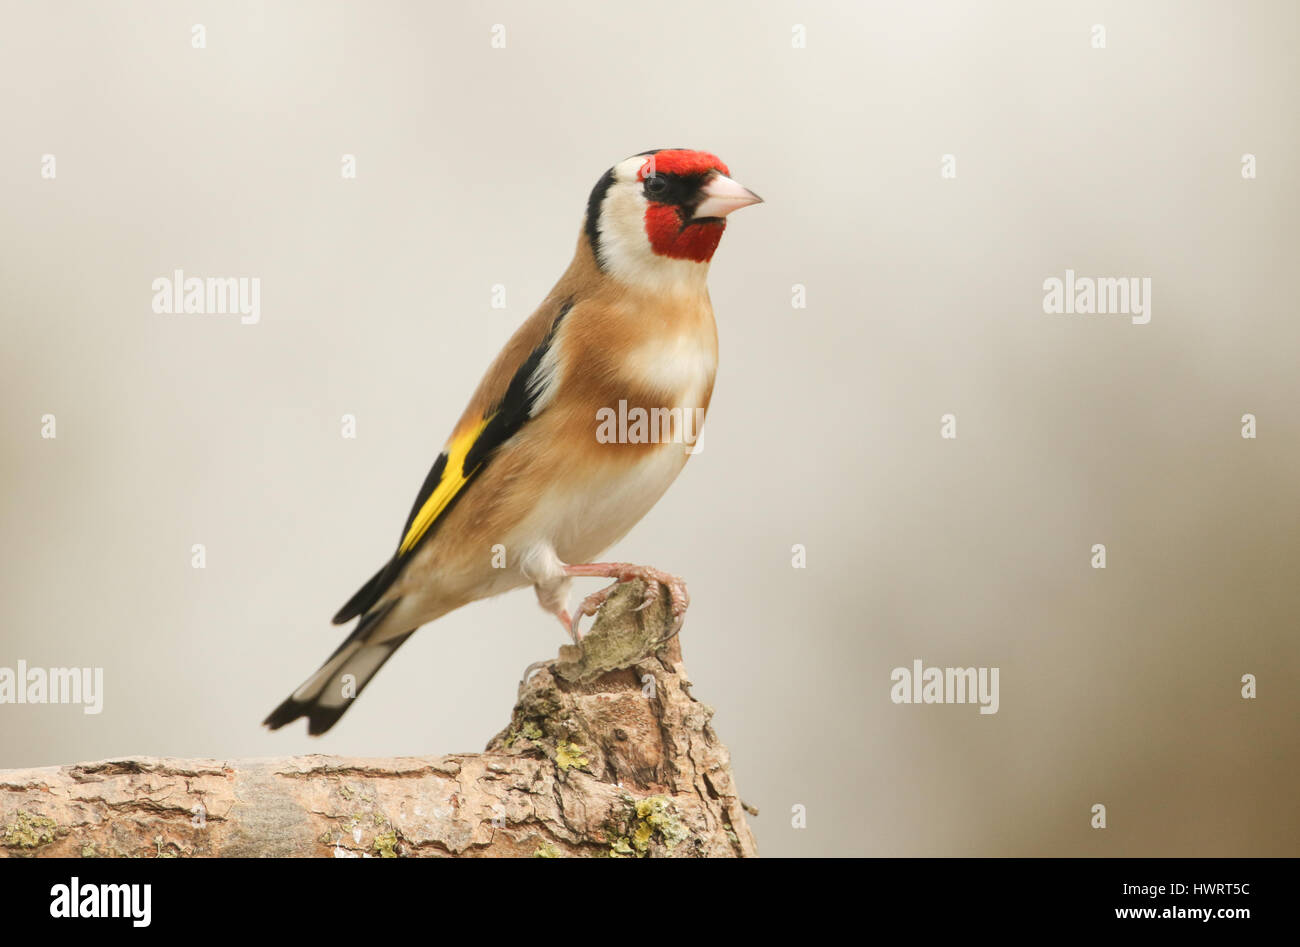 A pretty Goldfinch (Carduelis carduelis) perched on a branch. - Stock Image